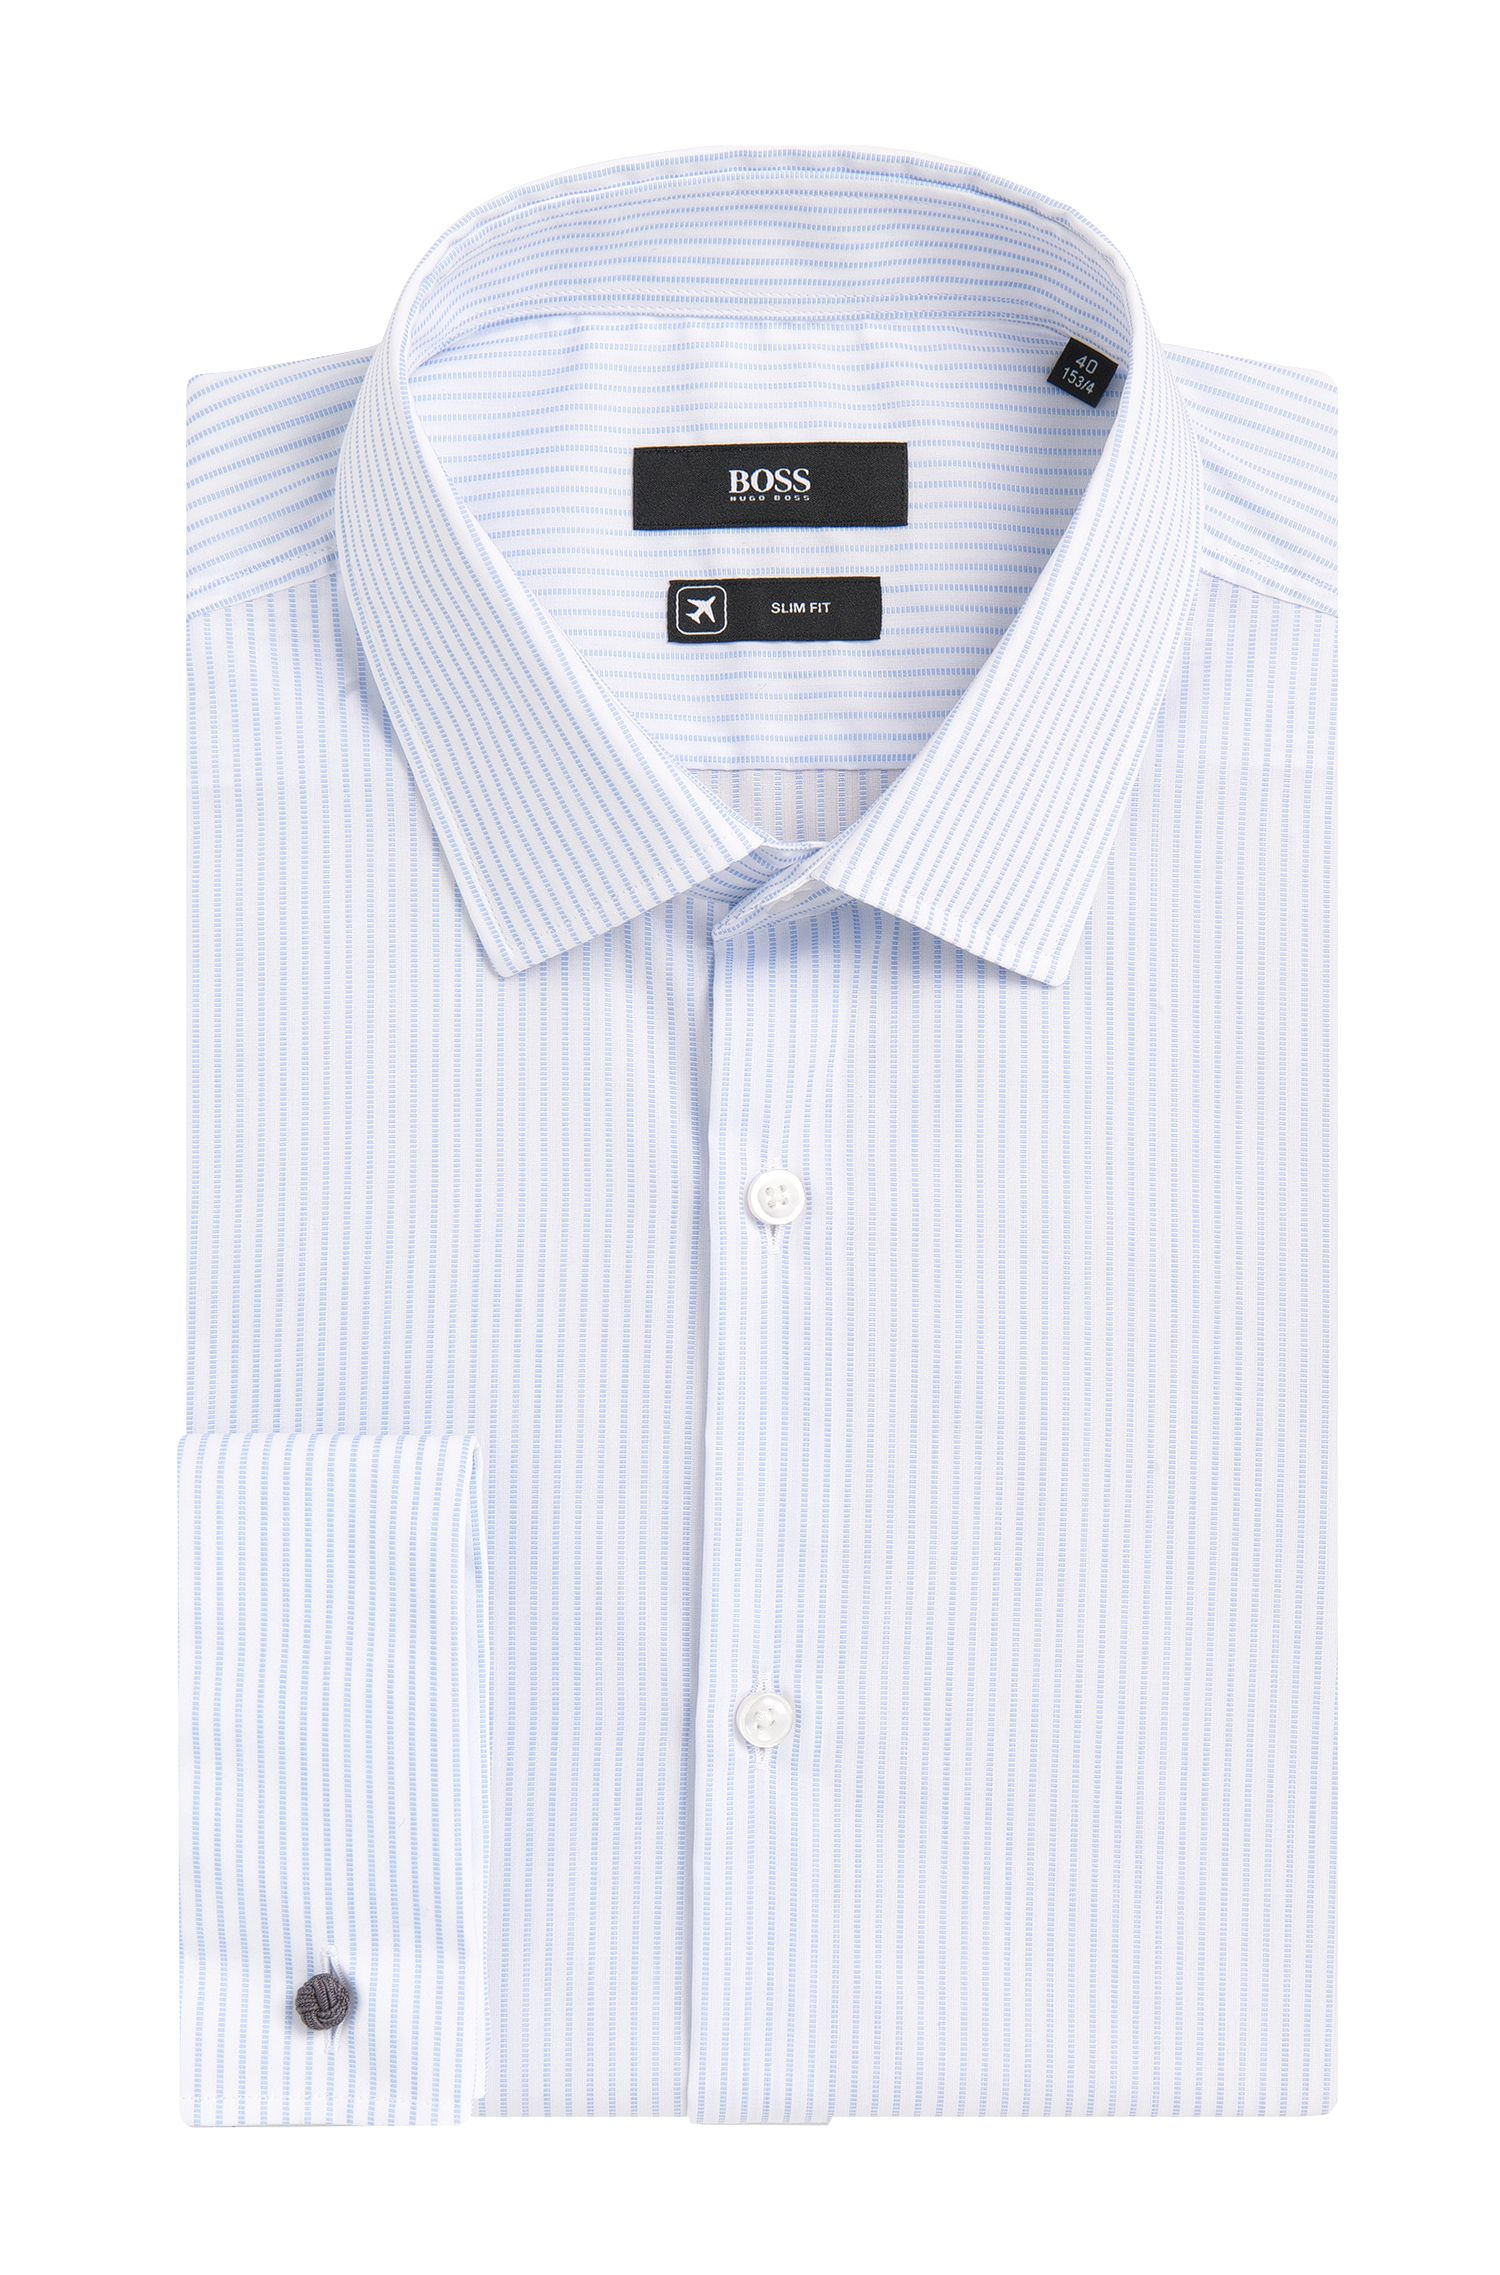 'Jacques' | Slim Fit, Cotton French Cuff Dress Shirt